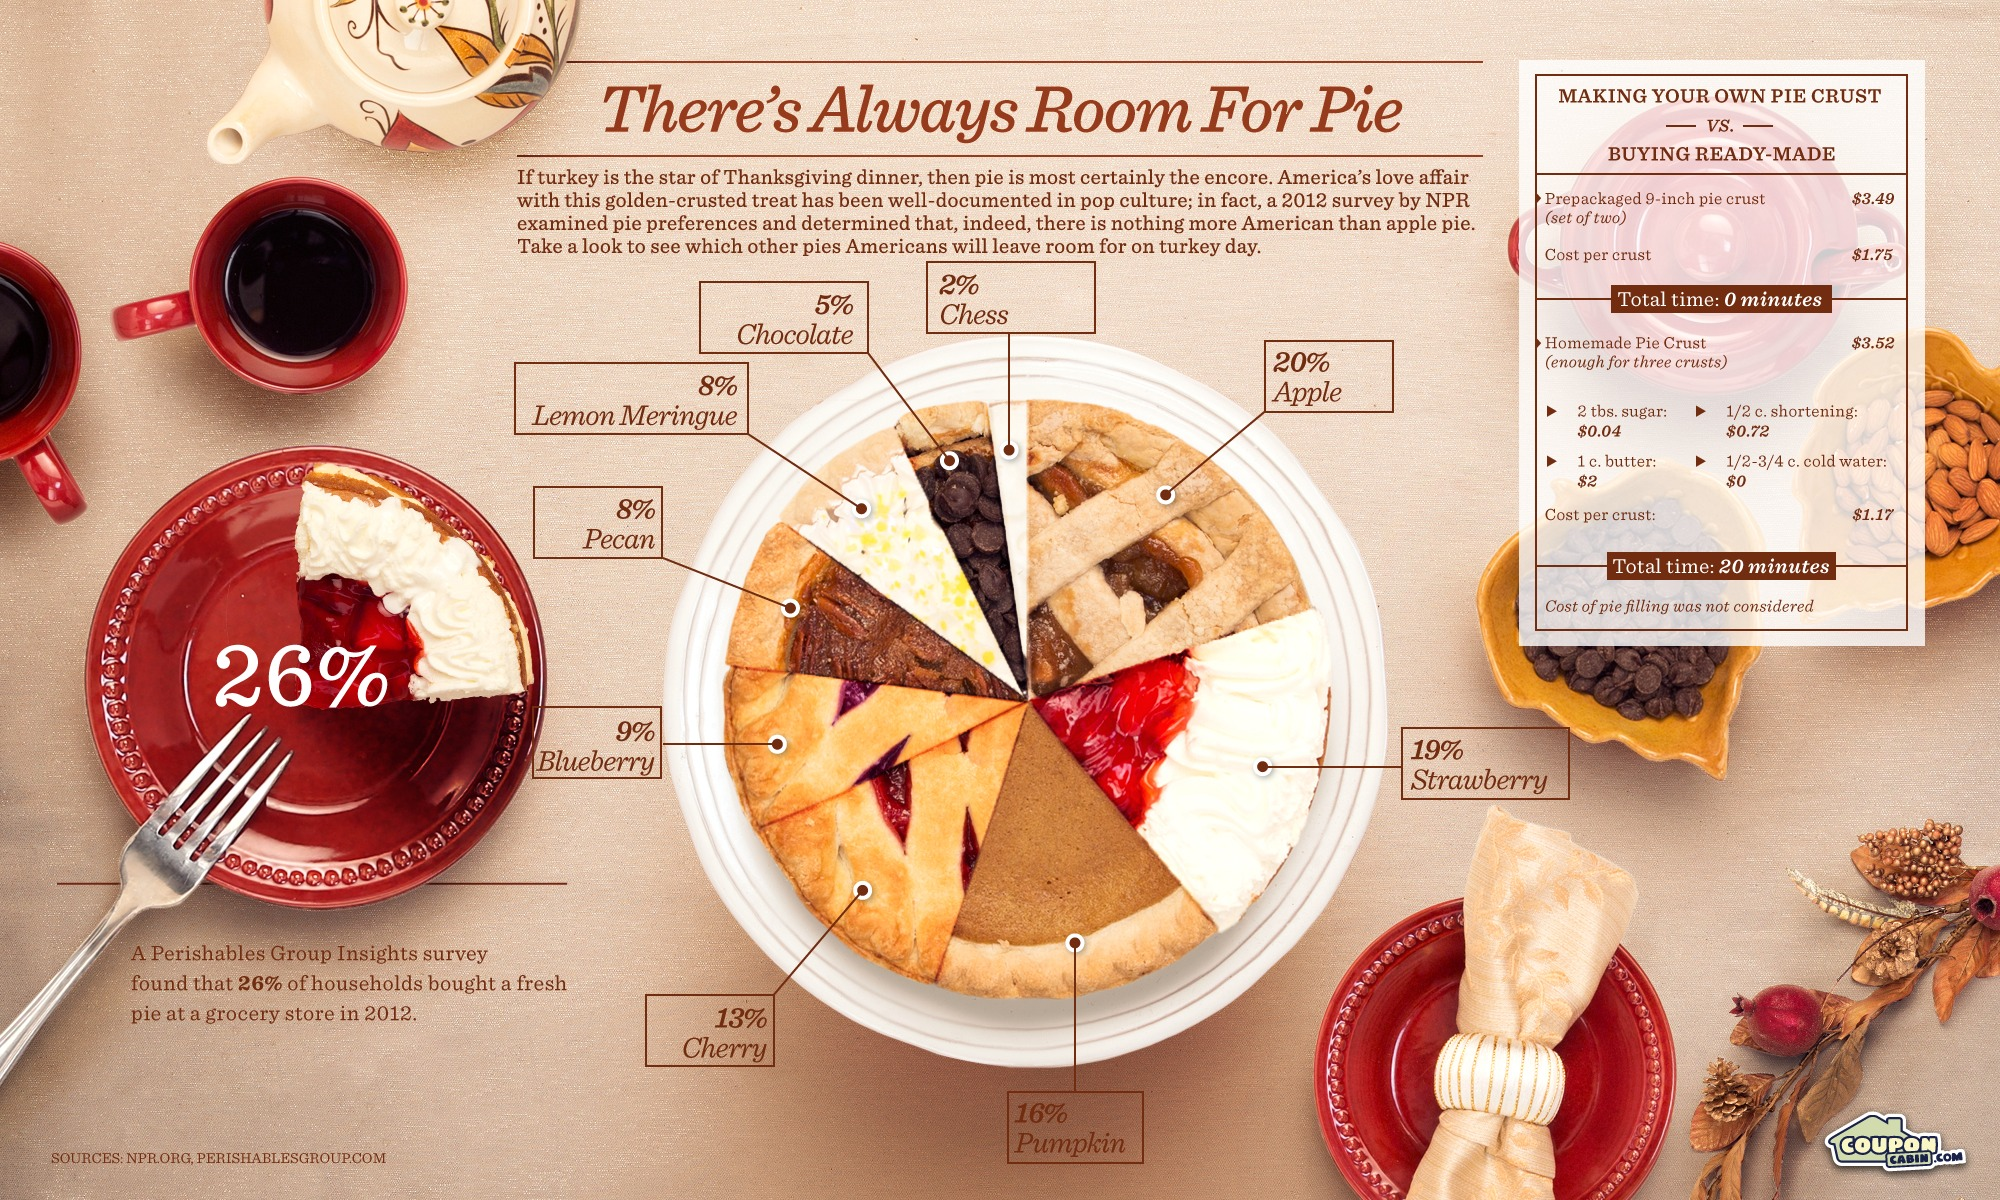 theres-always-room-for-pie_50ad832198395